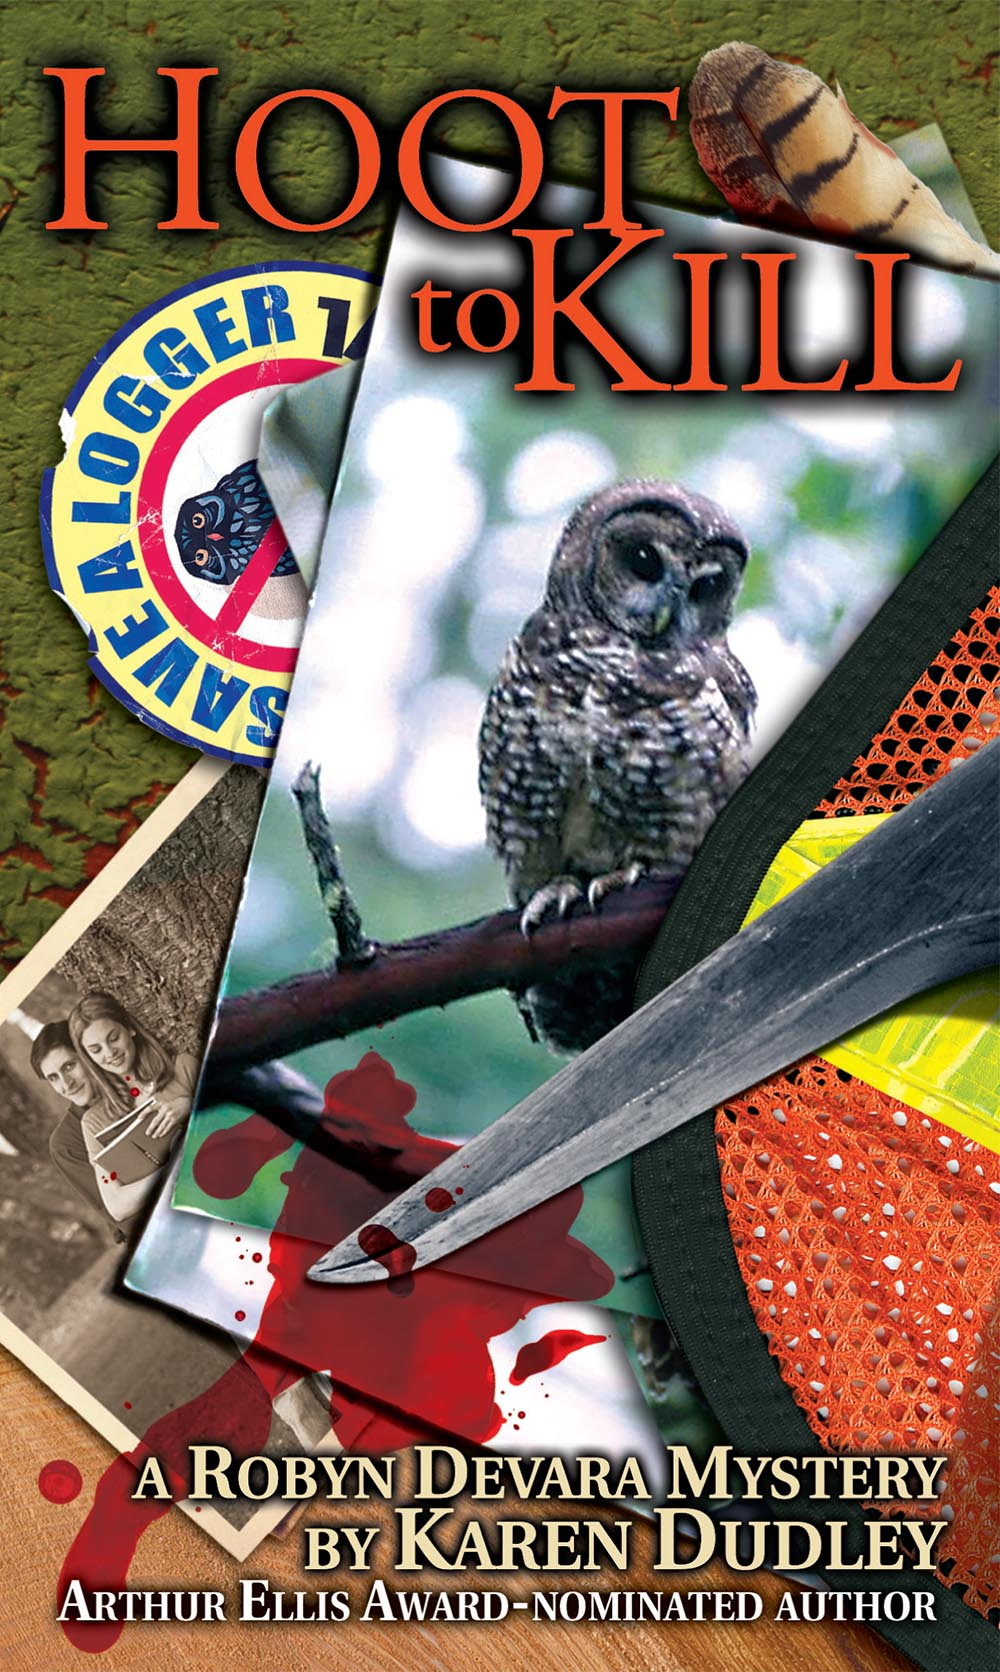 Hoot to Kill by Karen Dudley